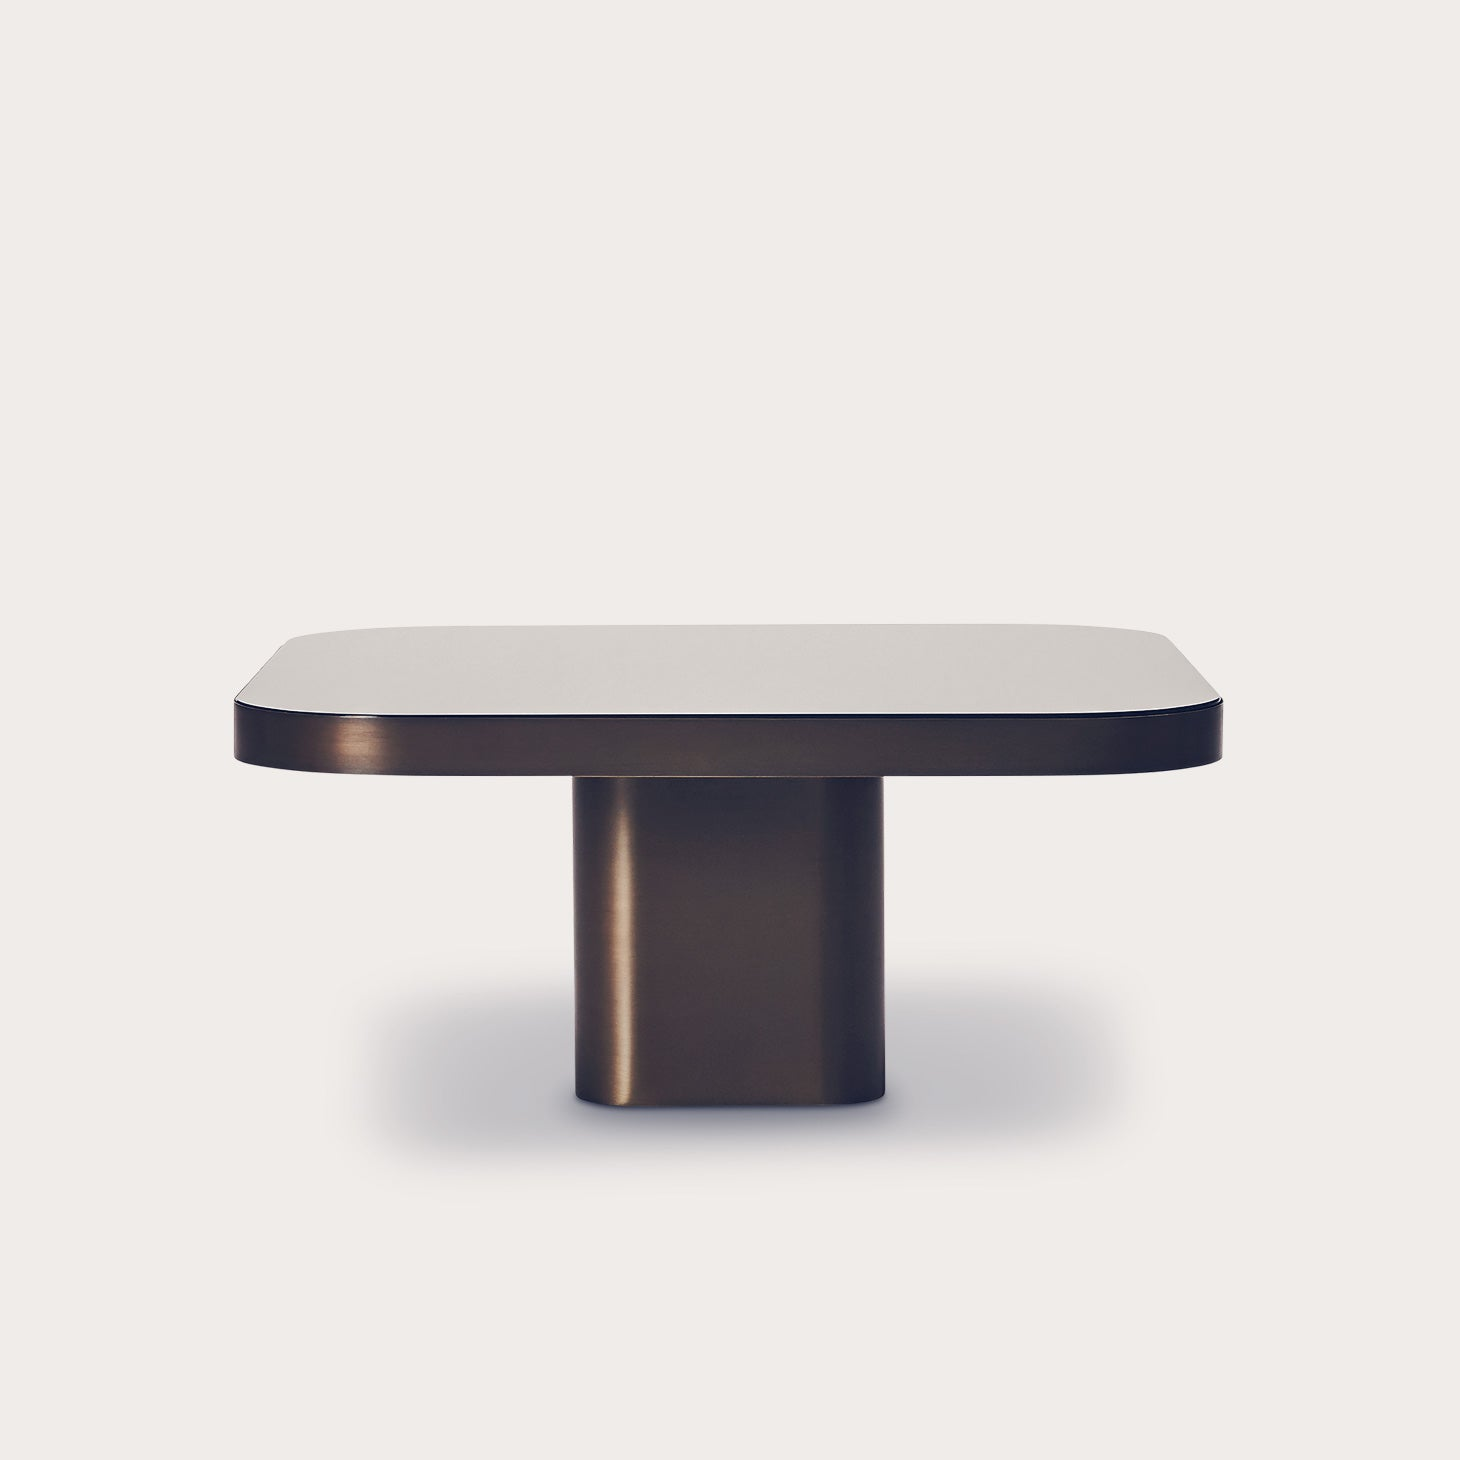 Bow Coffee Table No.3 Tables Guilherme Torres Designer Furniture Sku: 001-230-10242